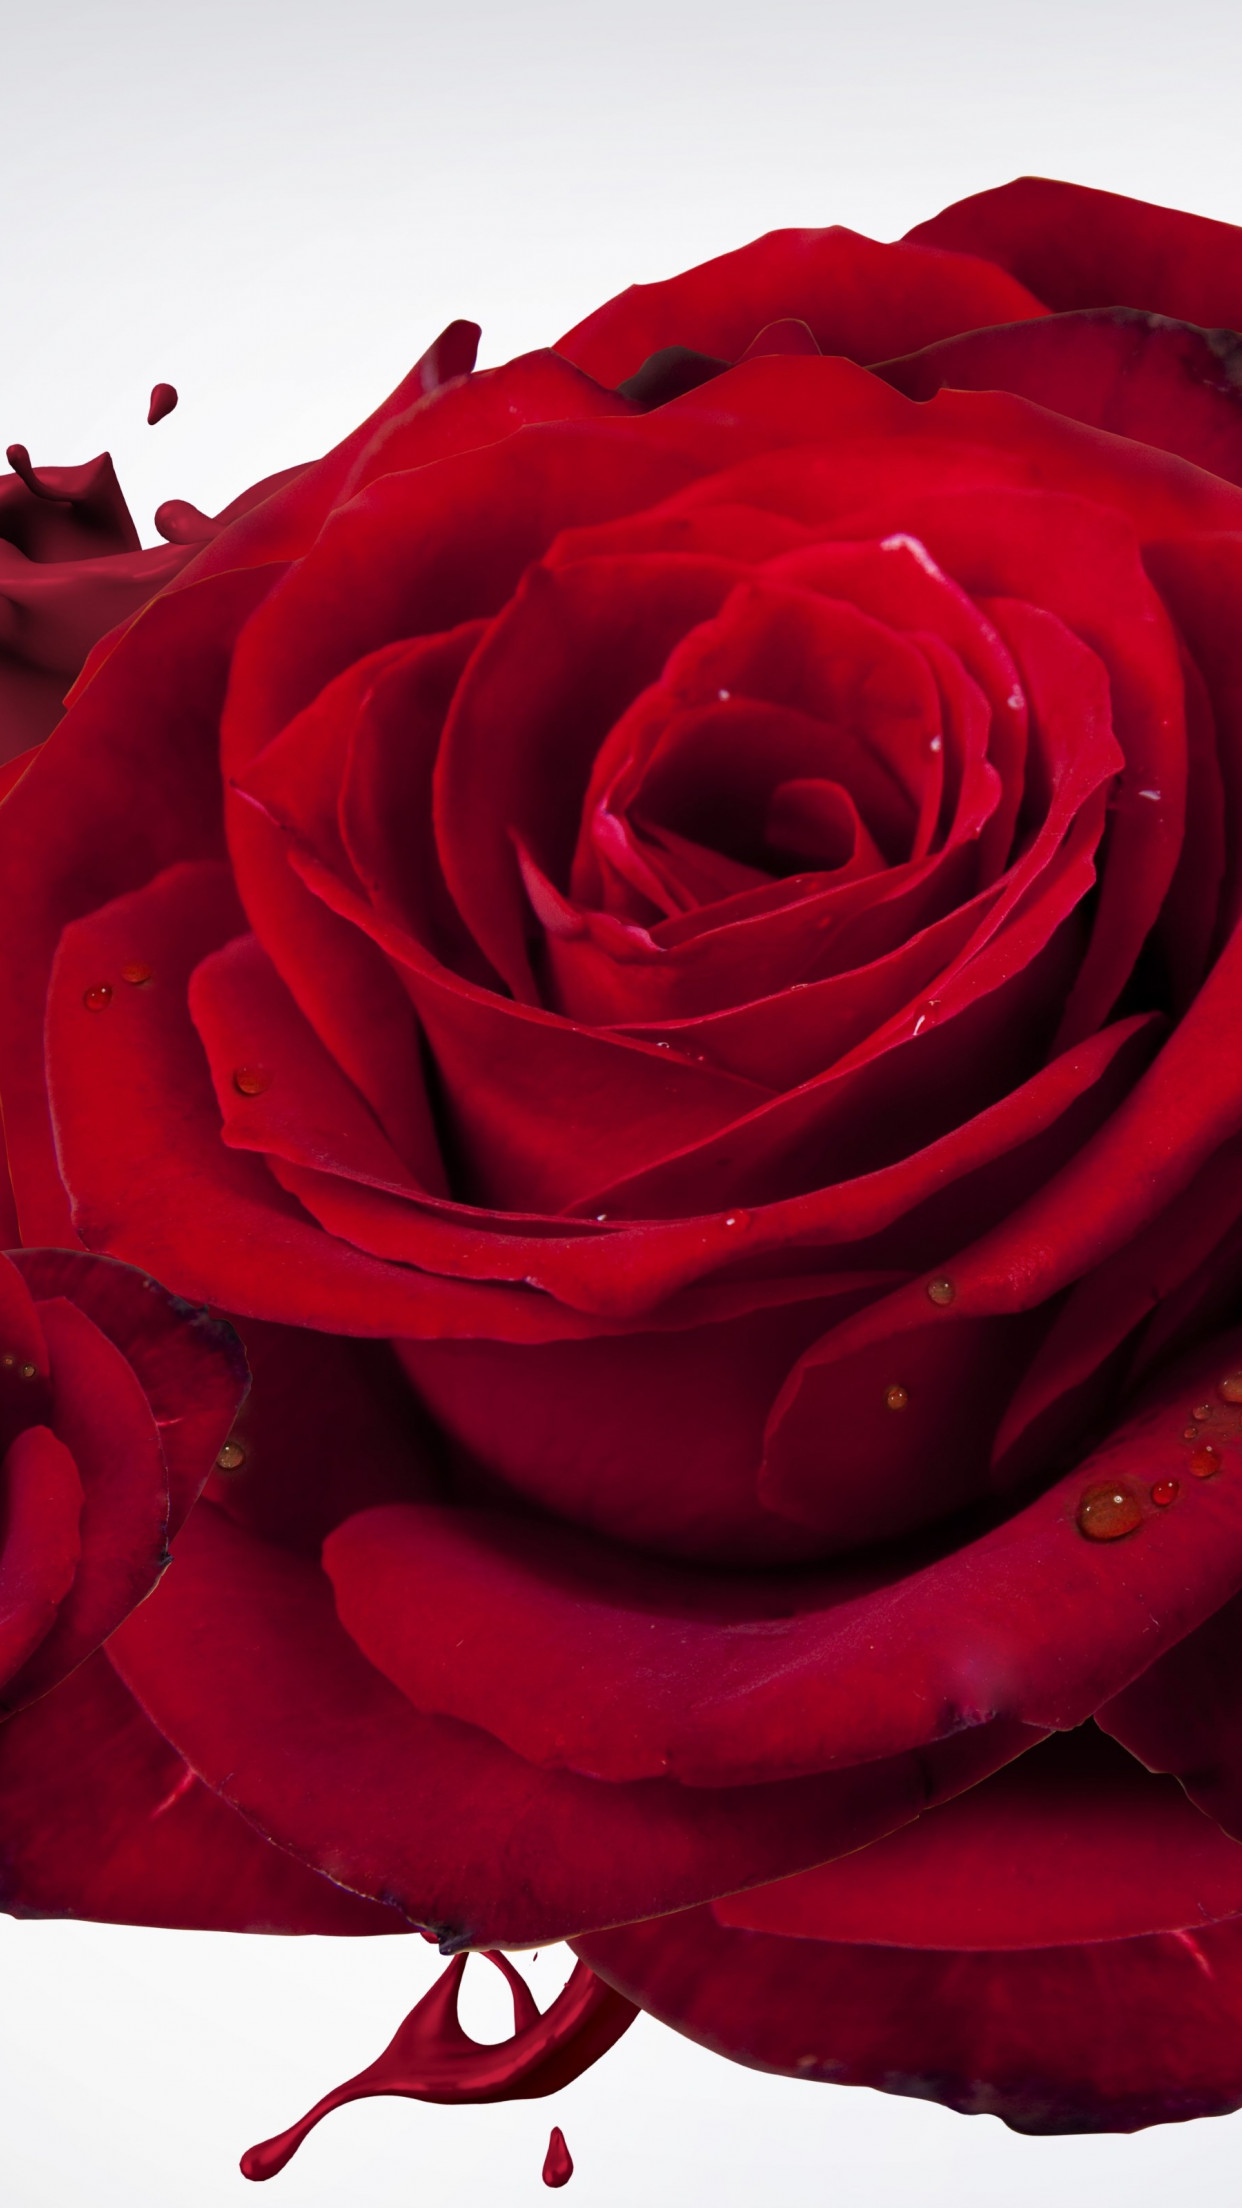 The most beautiful red roses | 1242x2208 wallpaper